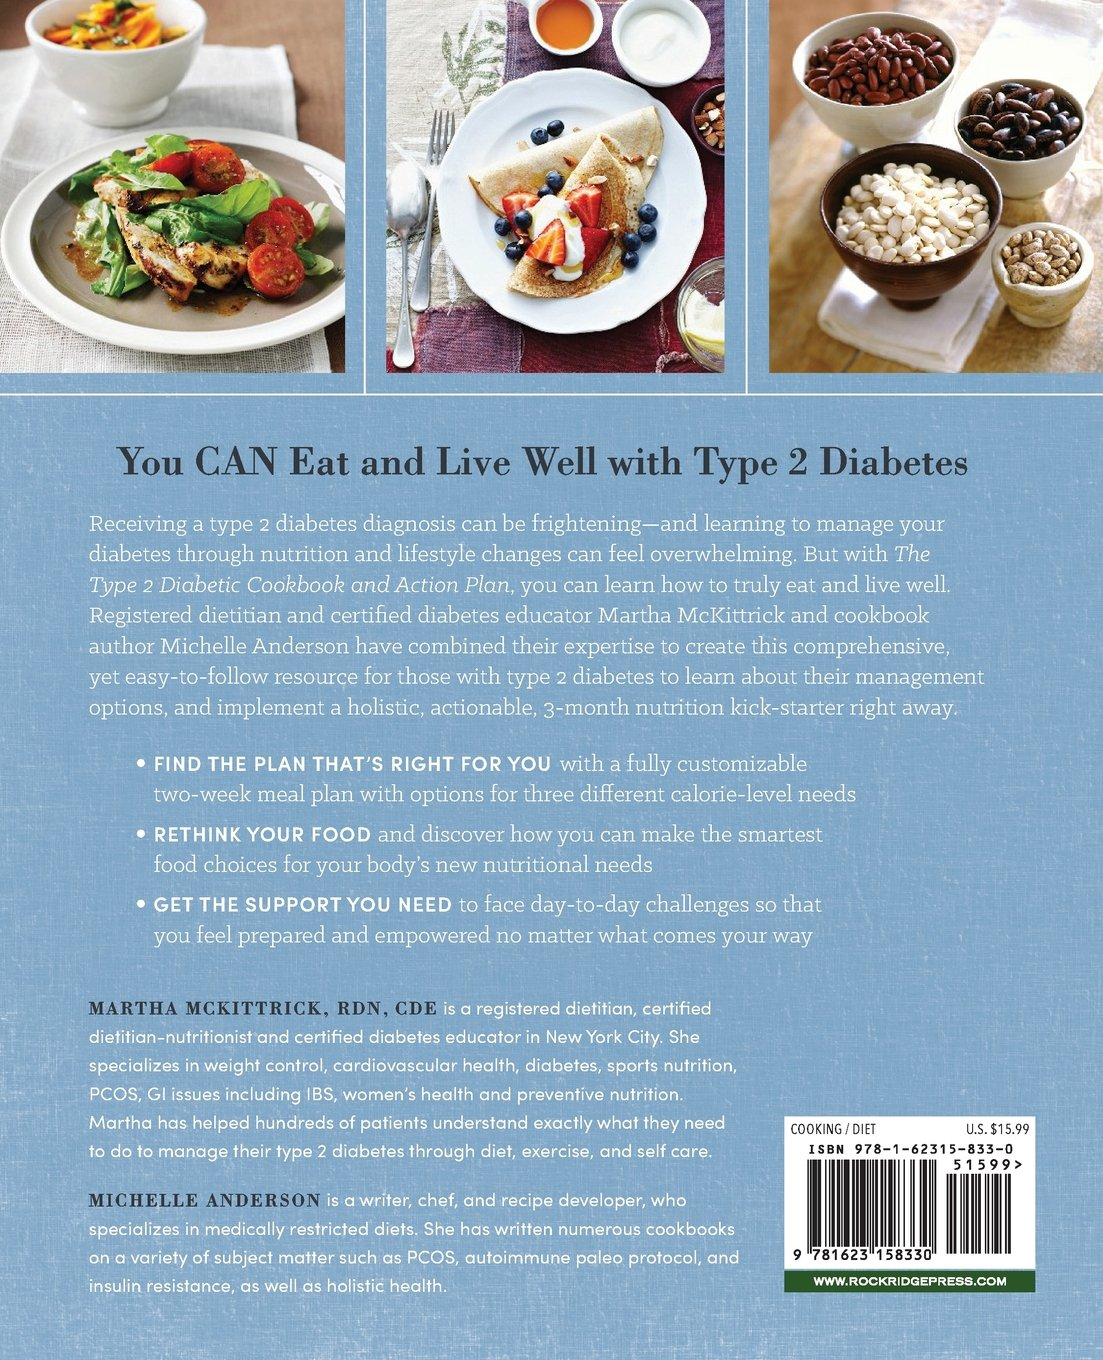 The Type 2 Diabetic Cookbook & Action Plan: A Three-Month Kickstart ...